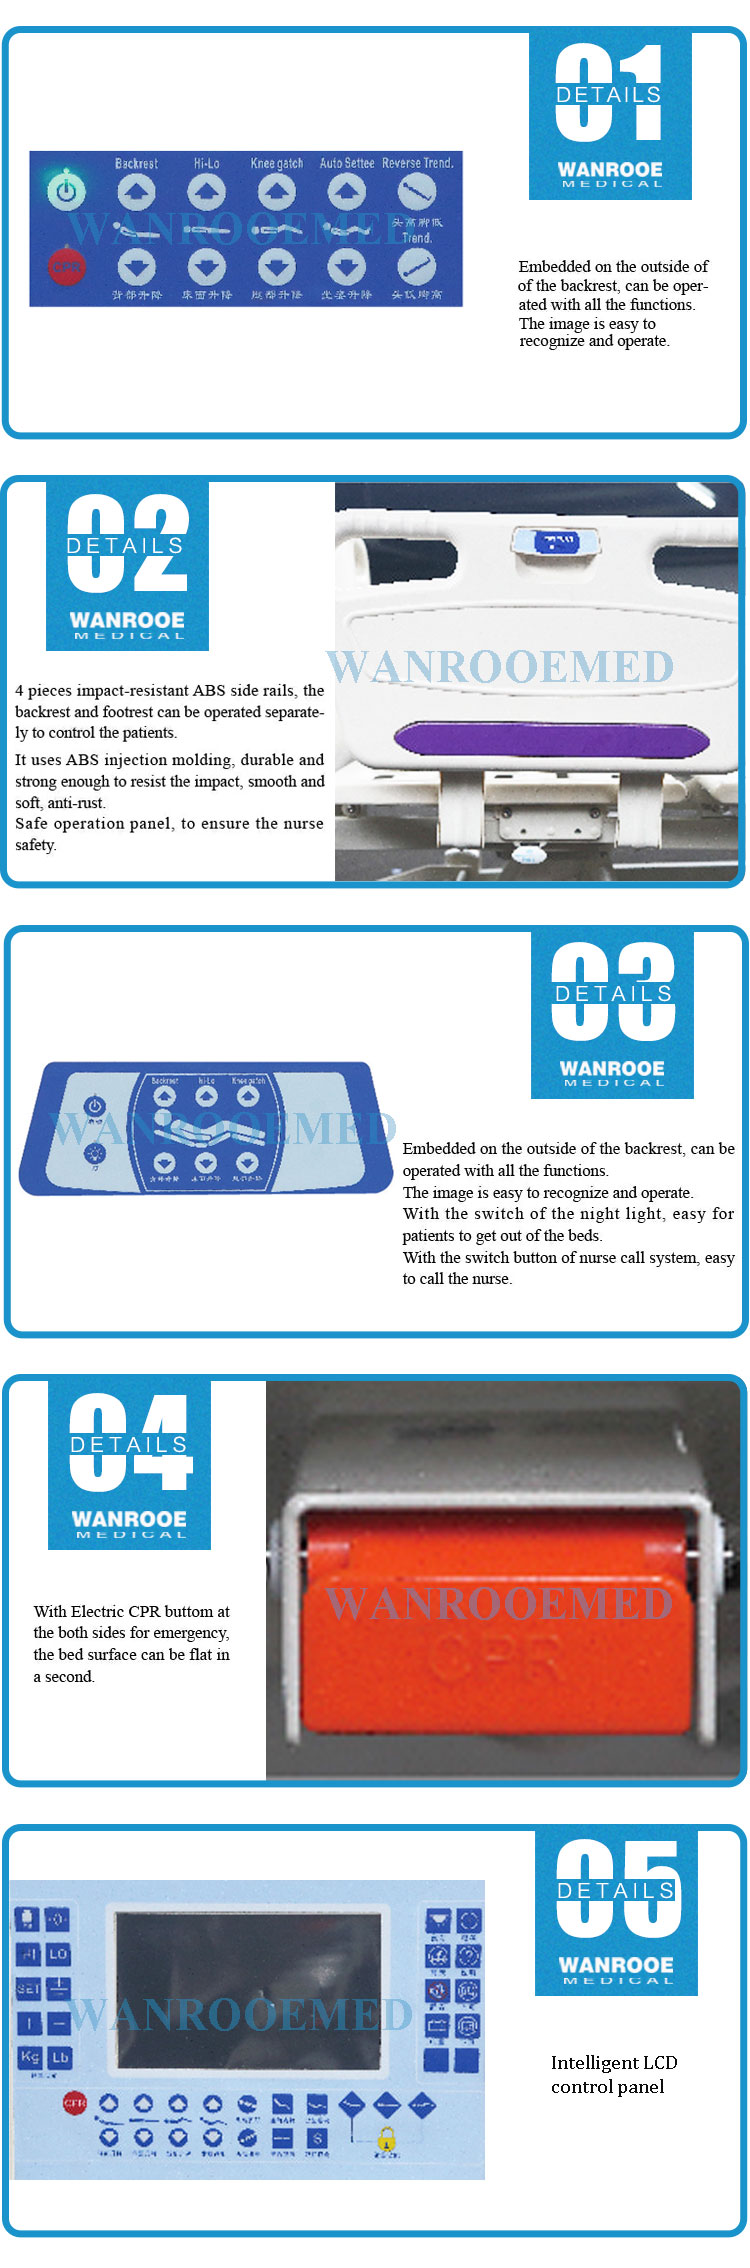 Five Function Electric Bed, Medical Electric Bed, Hostpital Electric Bed, ICU Electric Bed, Rotary Side Rail Hostpital Bed